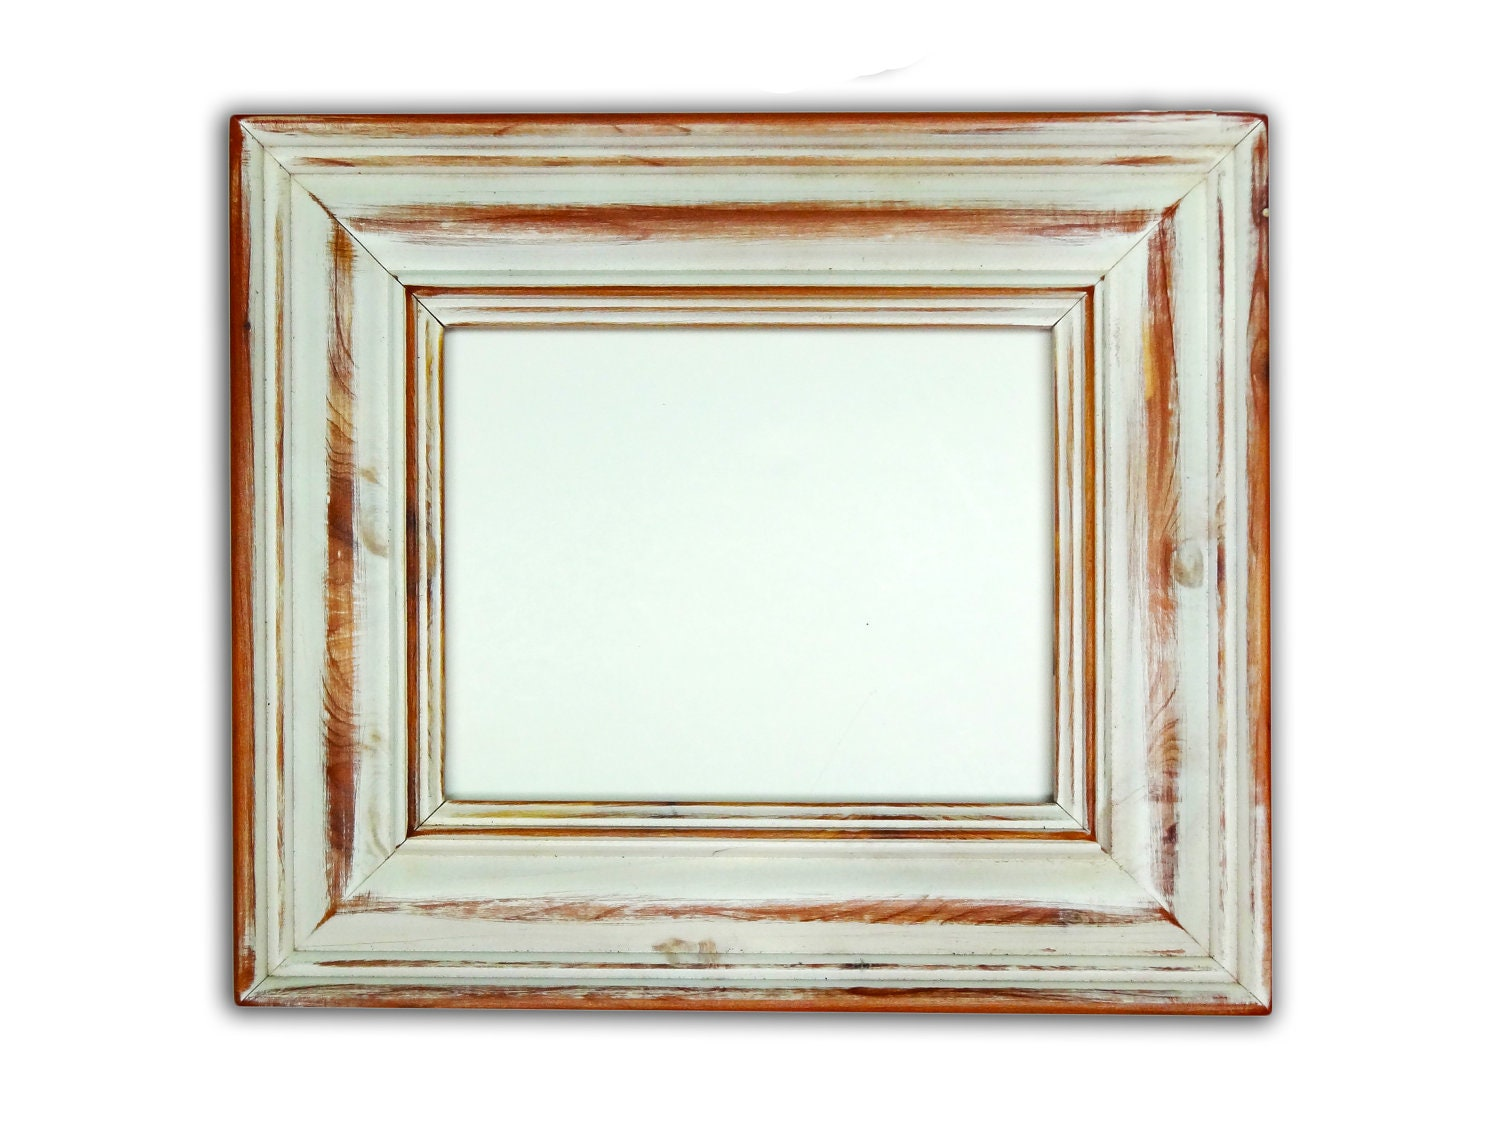 Wood Photo Frames : Antique Wood Photo Frames Wood picture frame custom